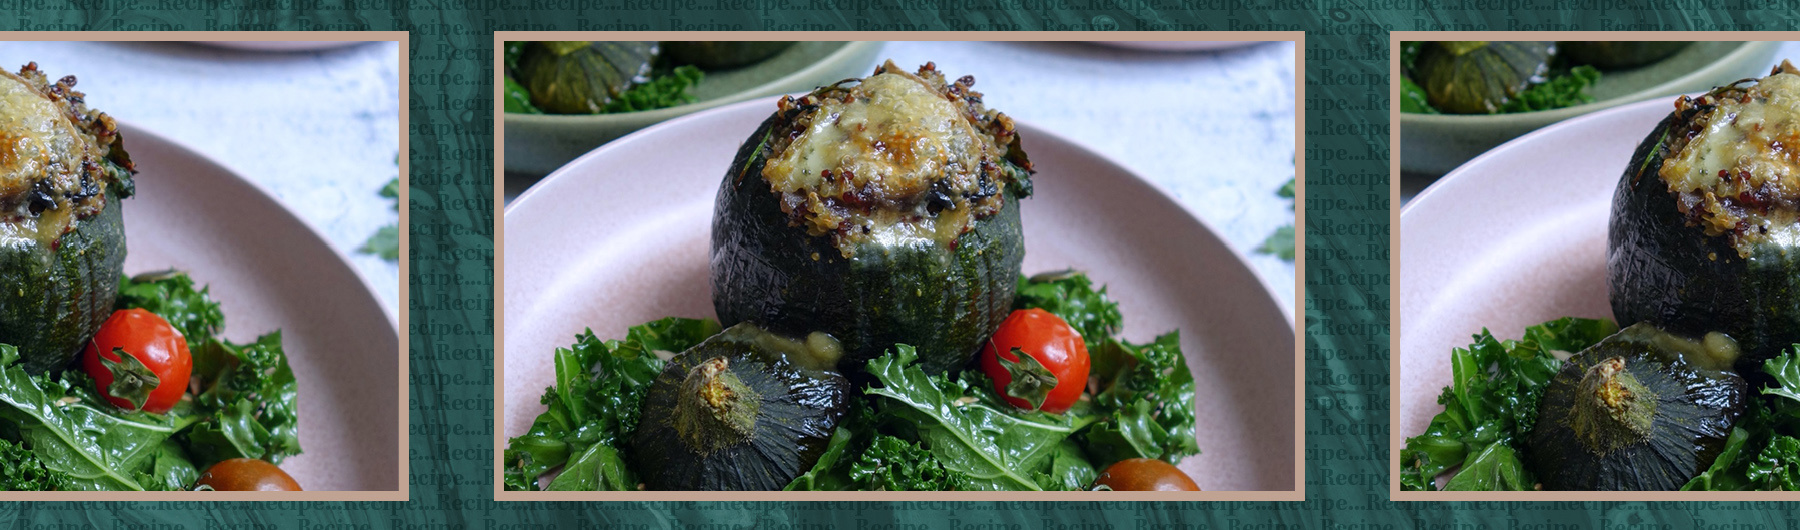 Cheesy stuffed round courgettes